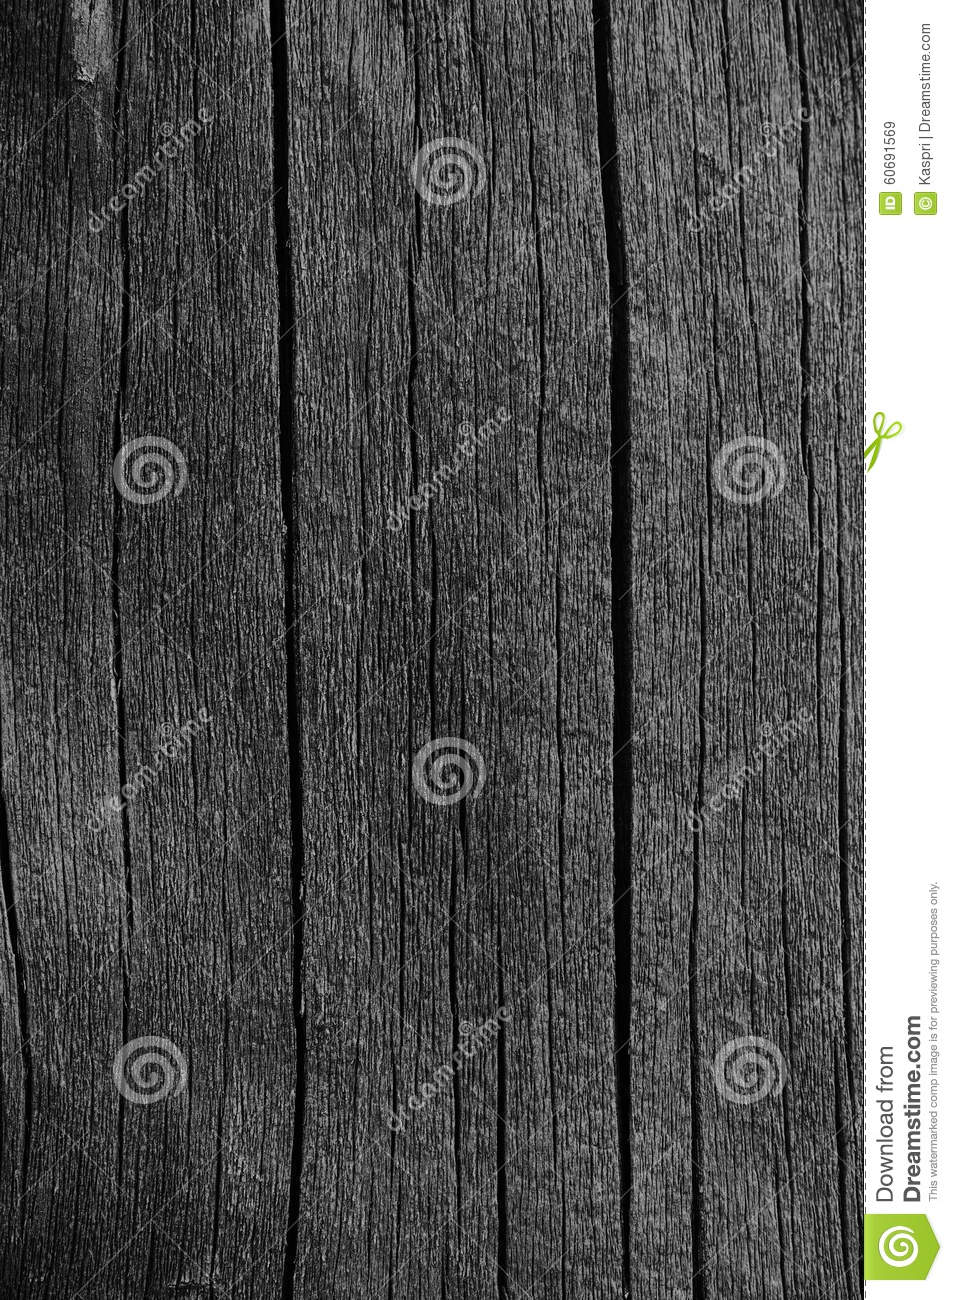 Wooden Plank Board Grey Black Wood Tar Paint Texture Detail Large Old Aged Dark Gray Detailed